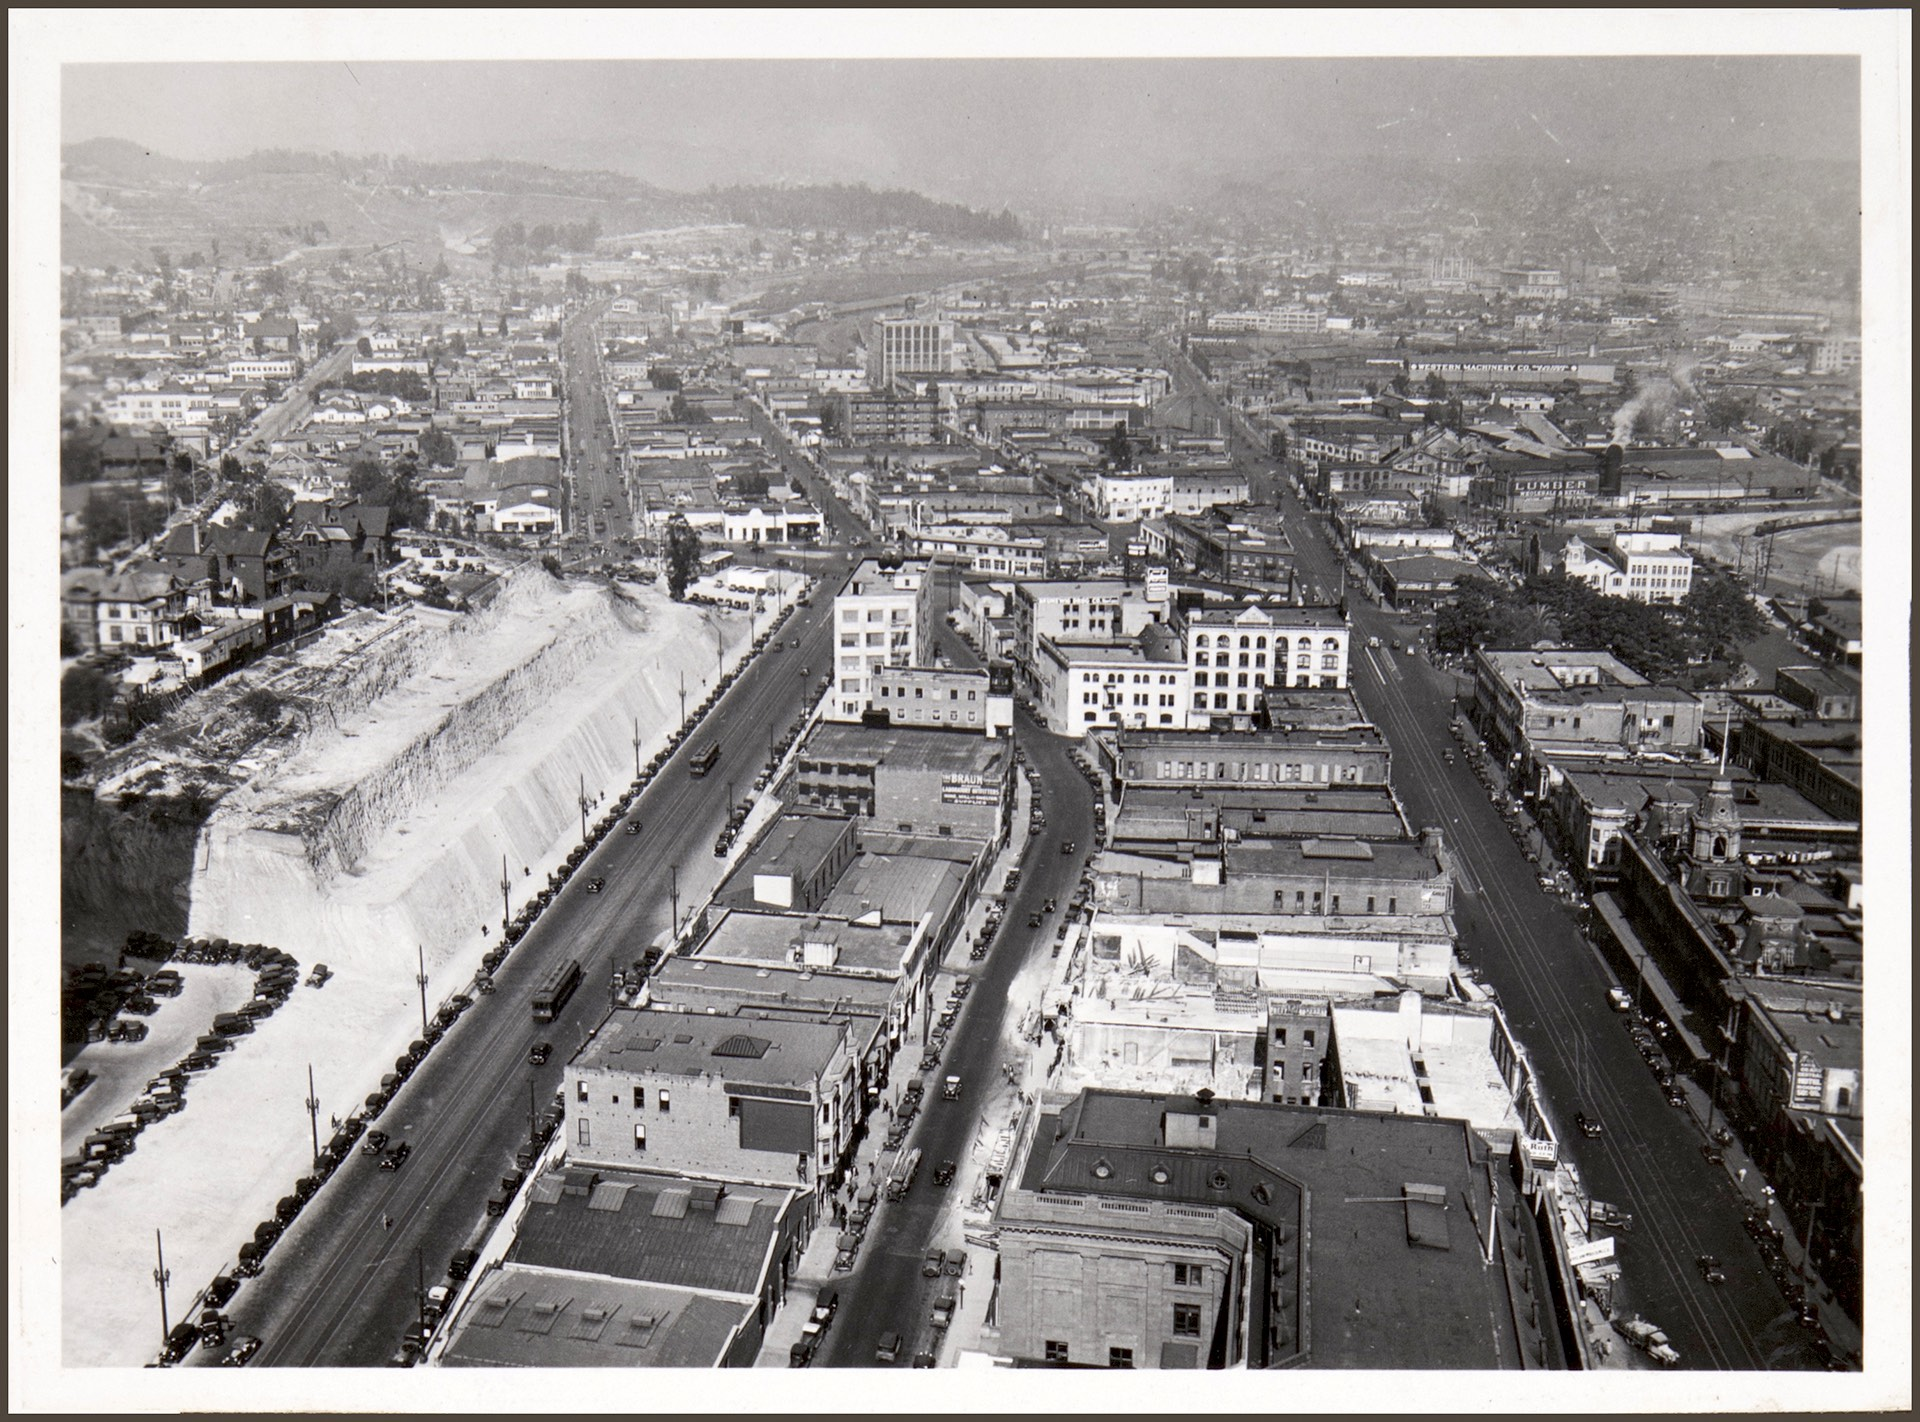 [Looking north from City Hall tower]. Los Angeles: 1932-33 by Anton Wagner, PC 17, California Historical Society.